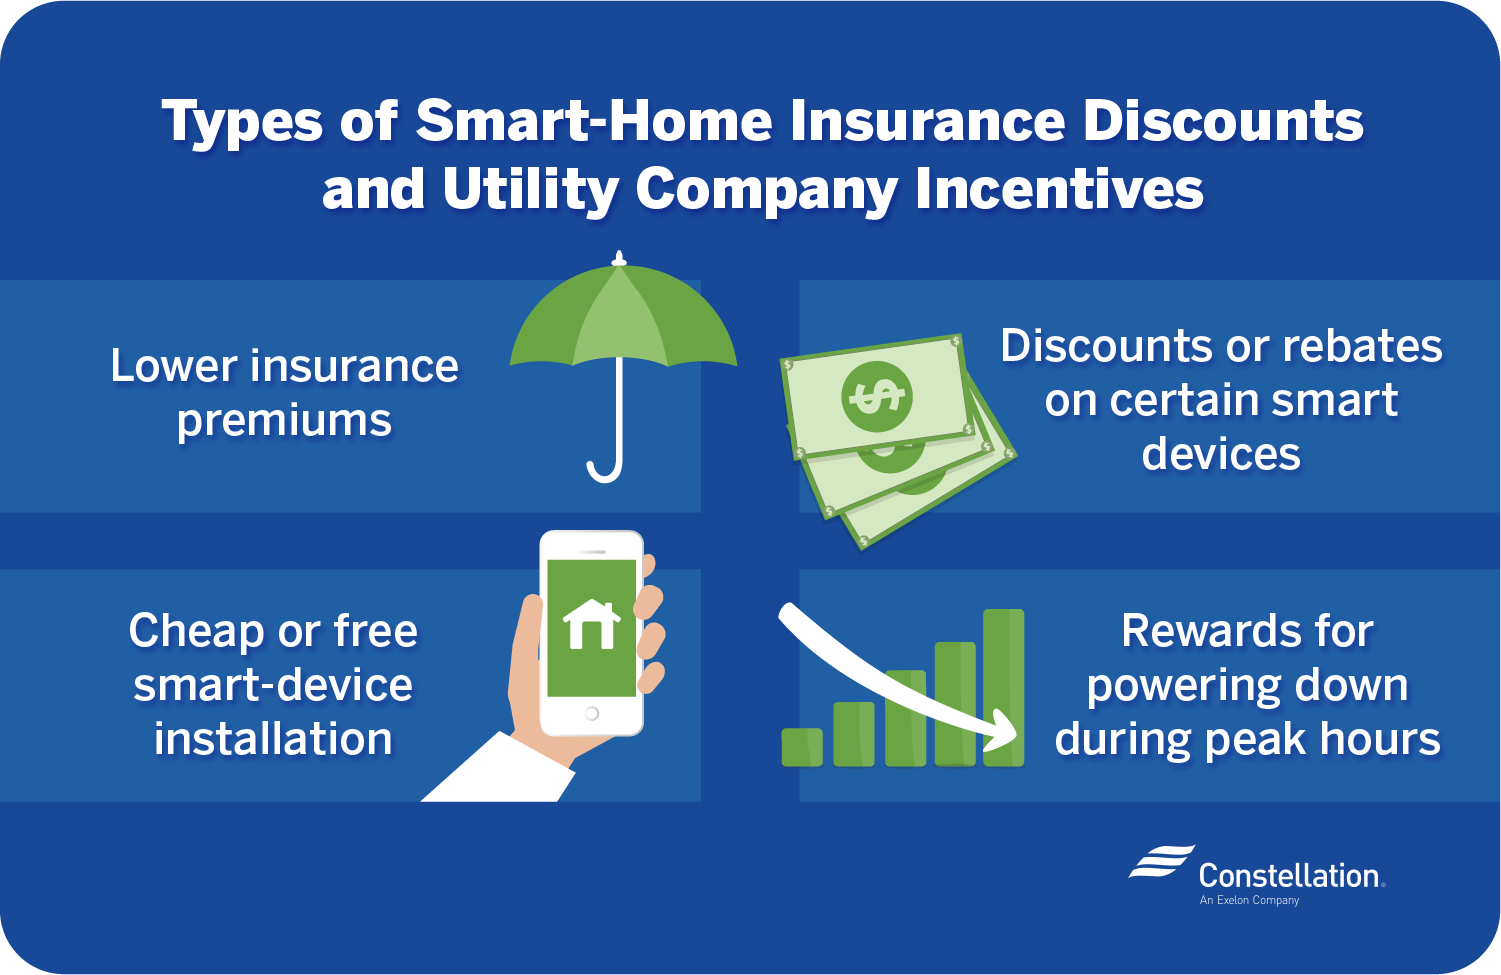 Types of smart-home insurance discounts